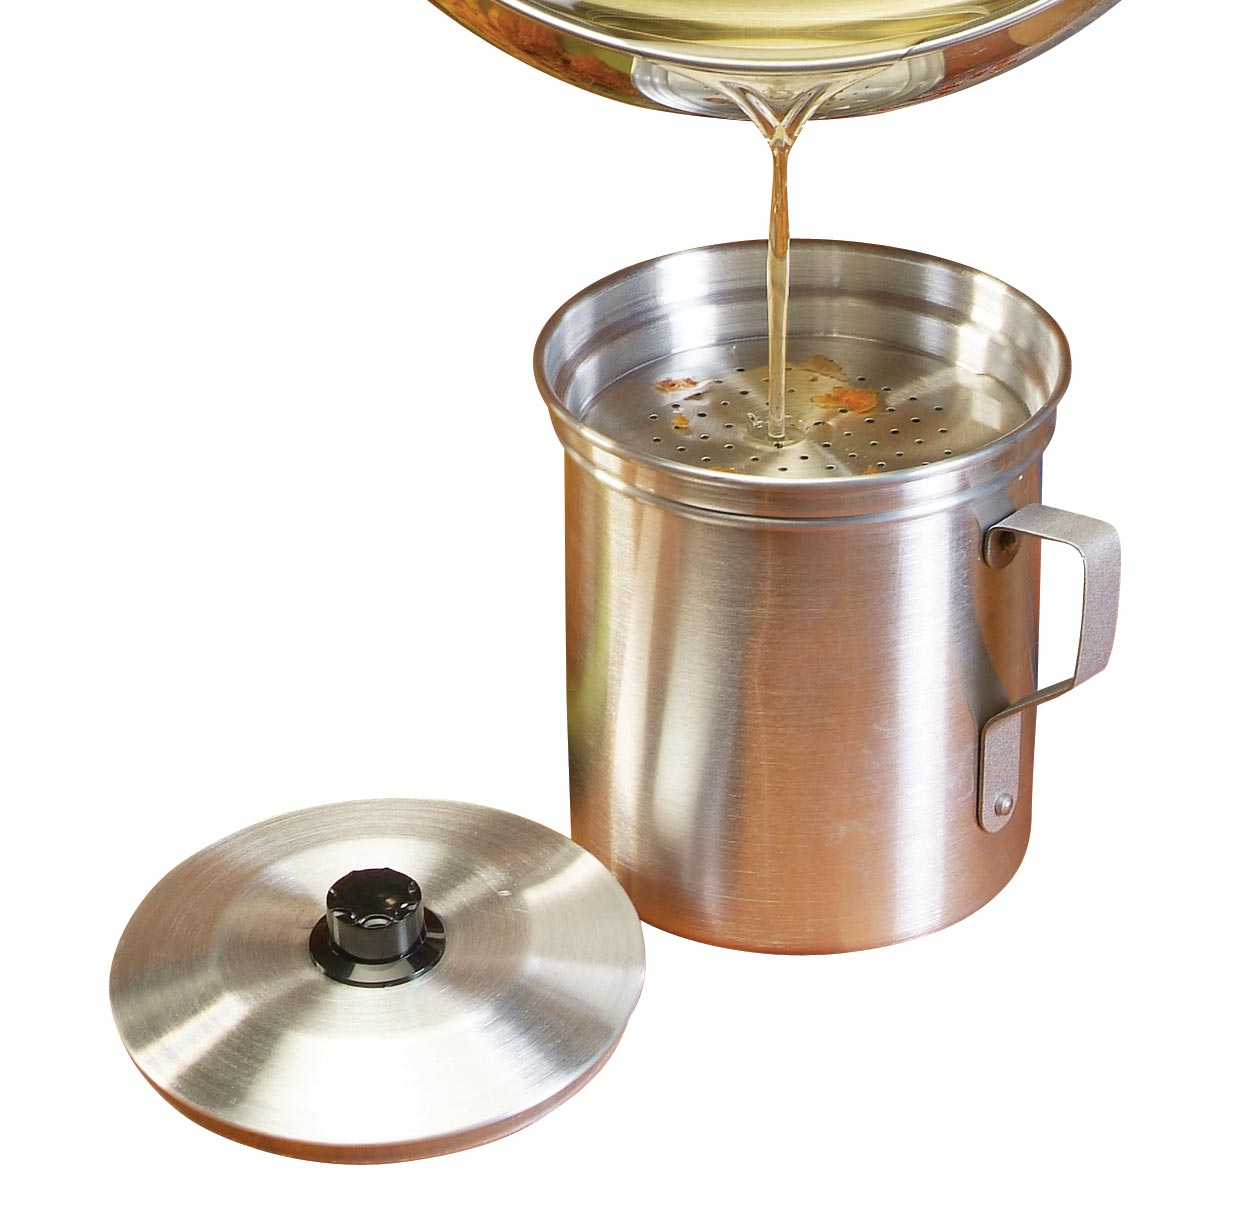 Oil Strainer by Walter Drake